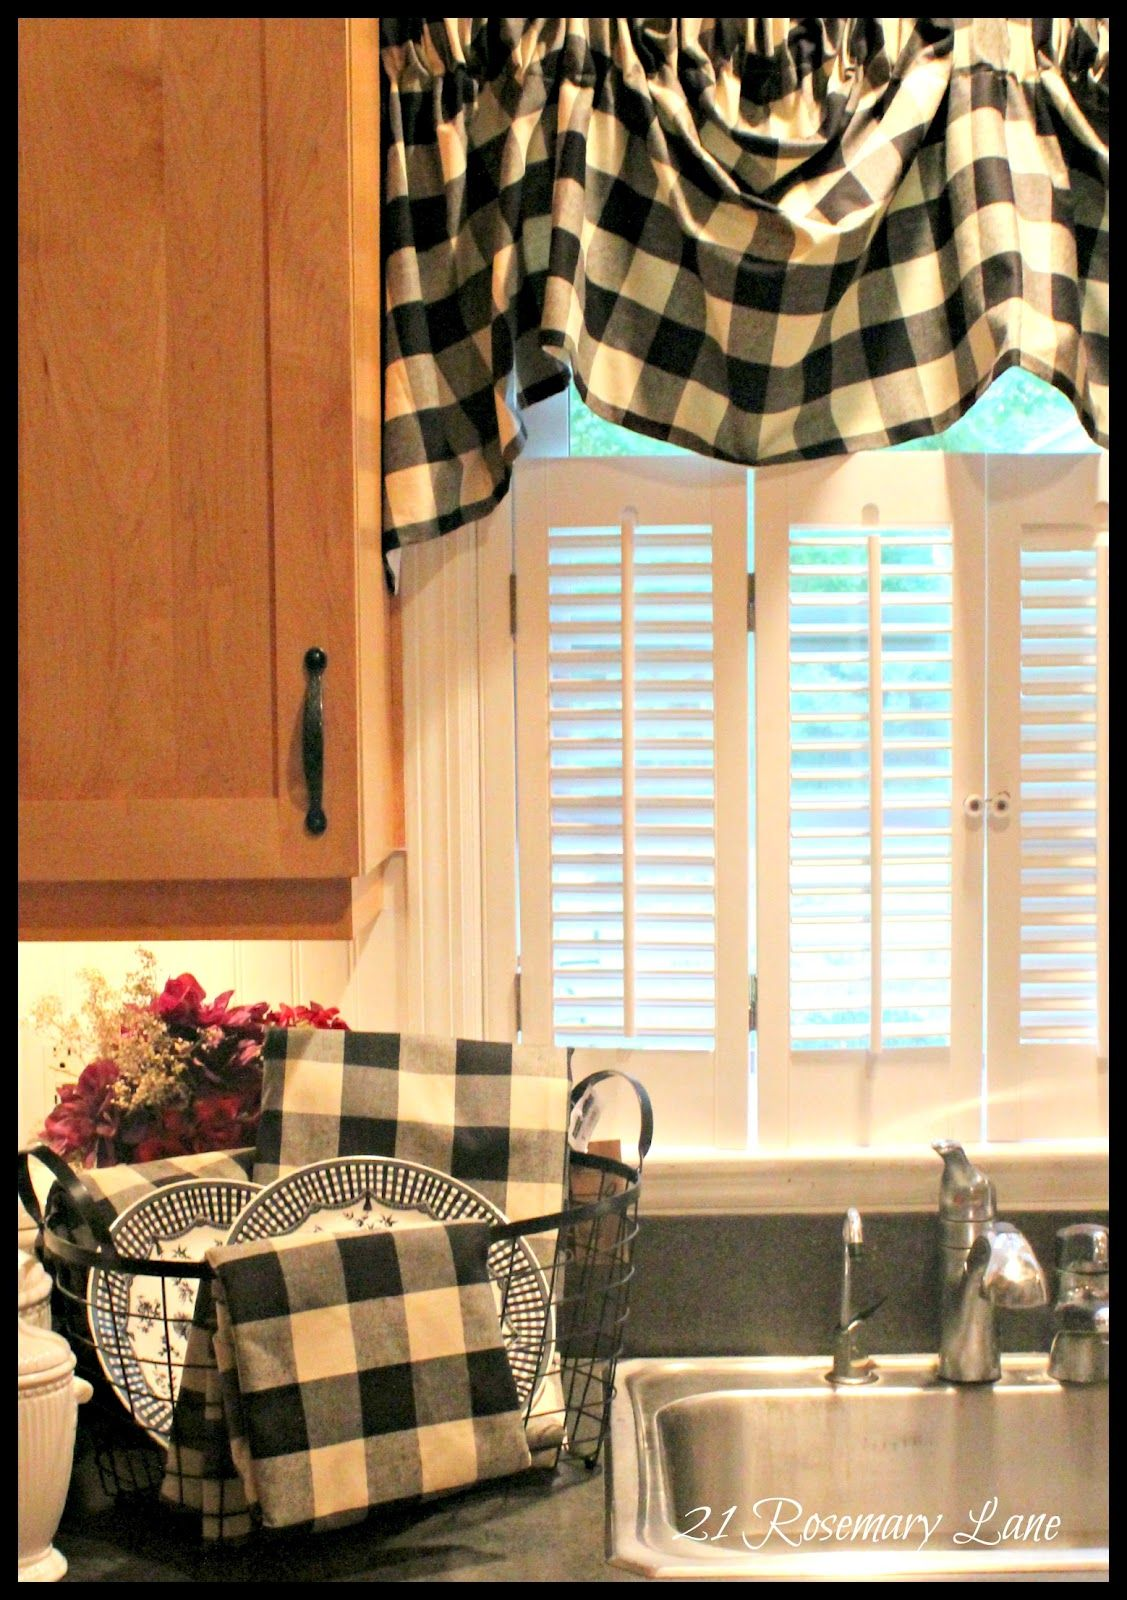 21 Rosemary Lane: A Few New Items for My Kitchen ~ Black and White ...